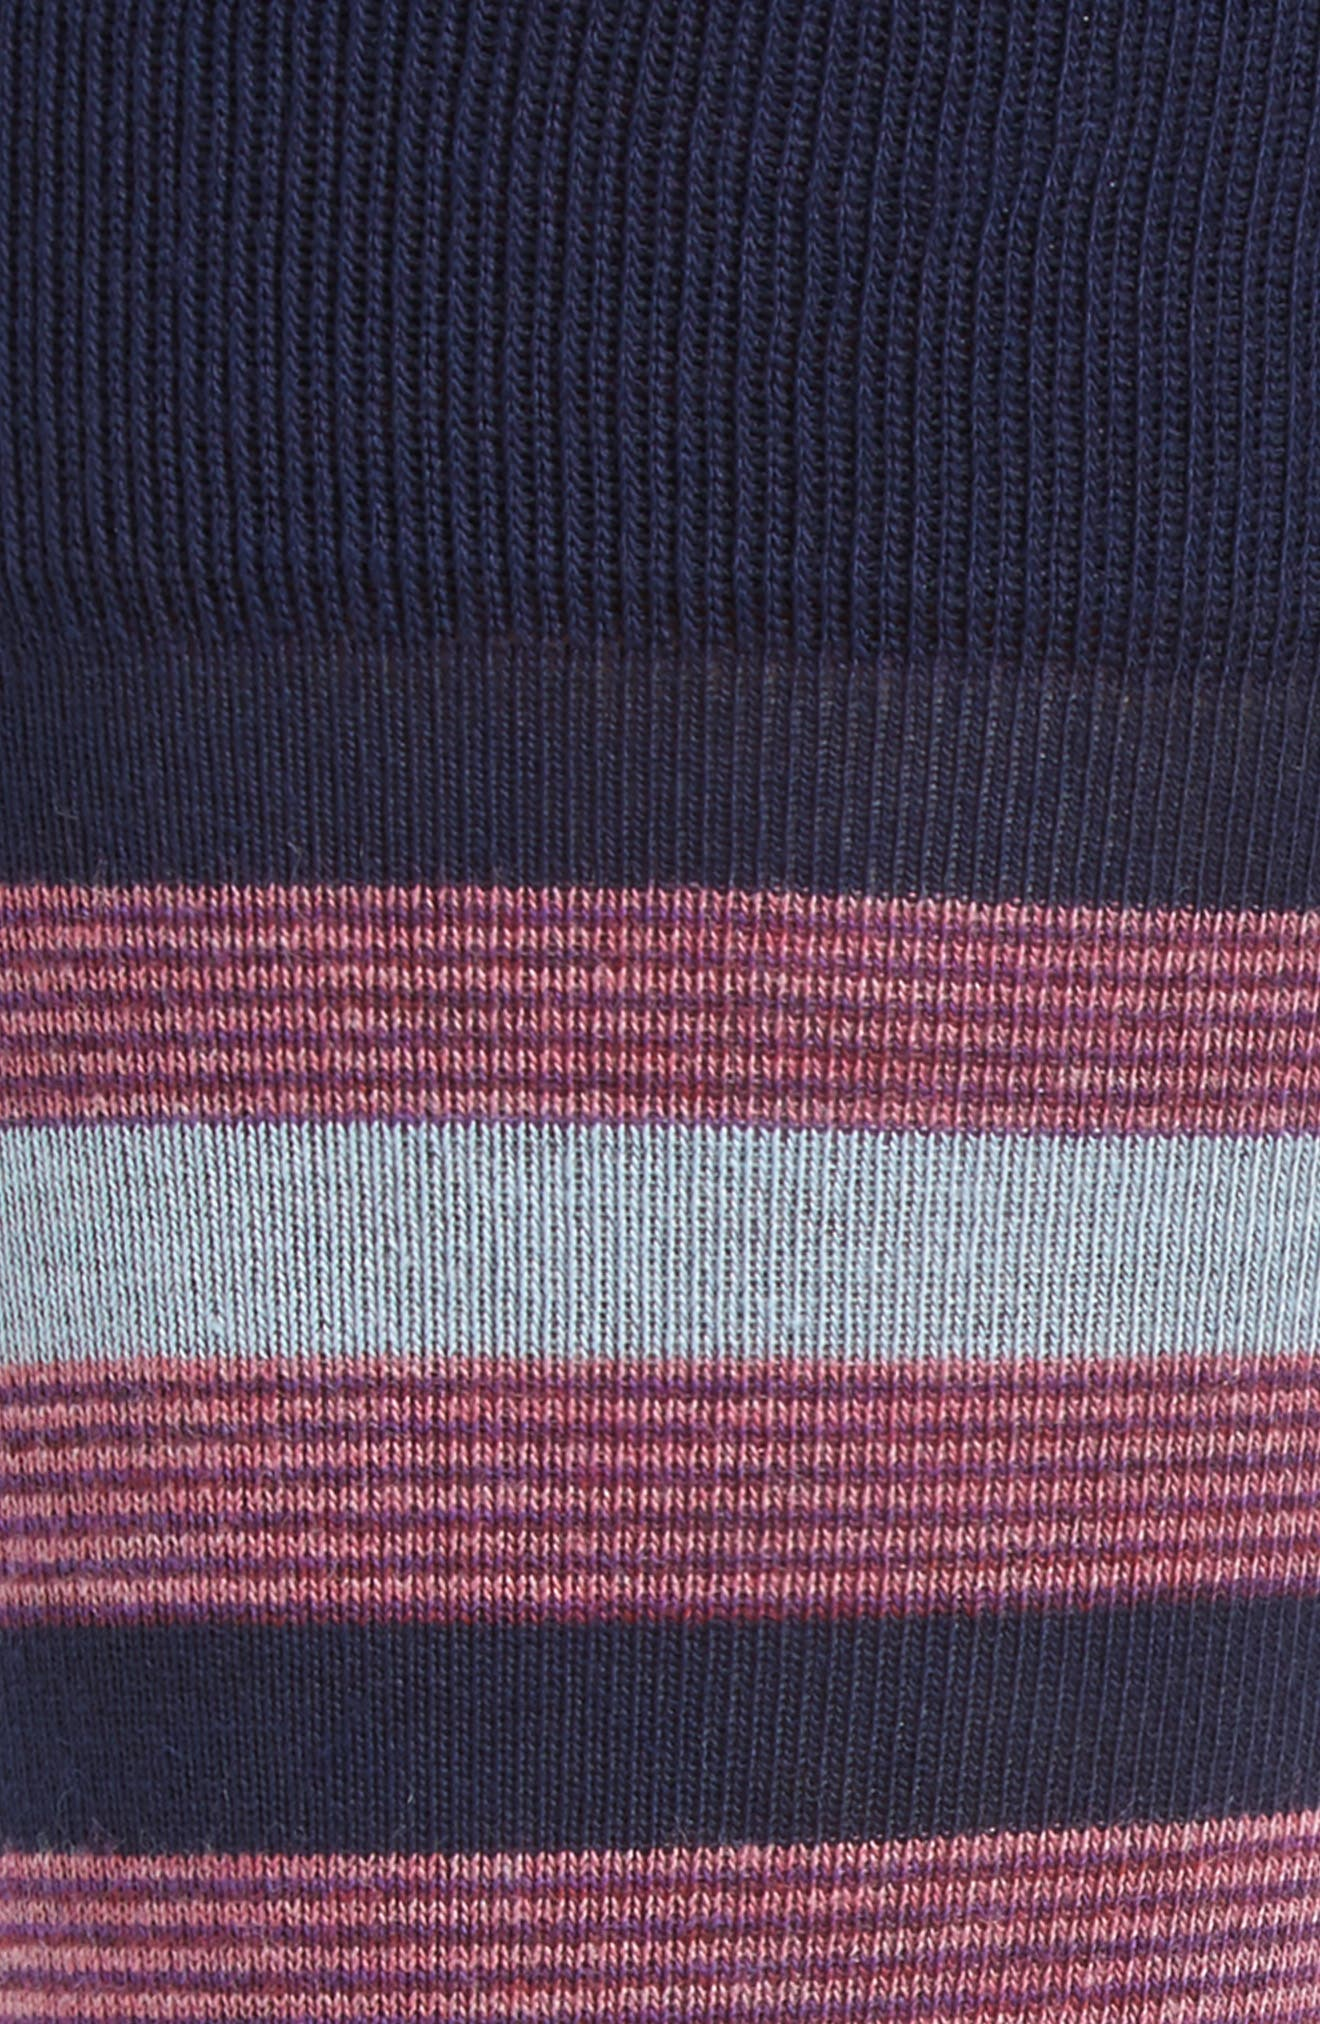 Stripe Block Socks,                             Alternate thumbnail 2, color,                             Navy